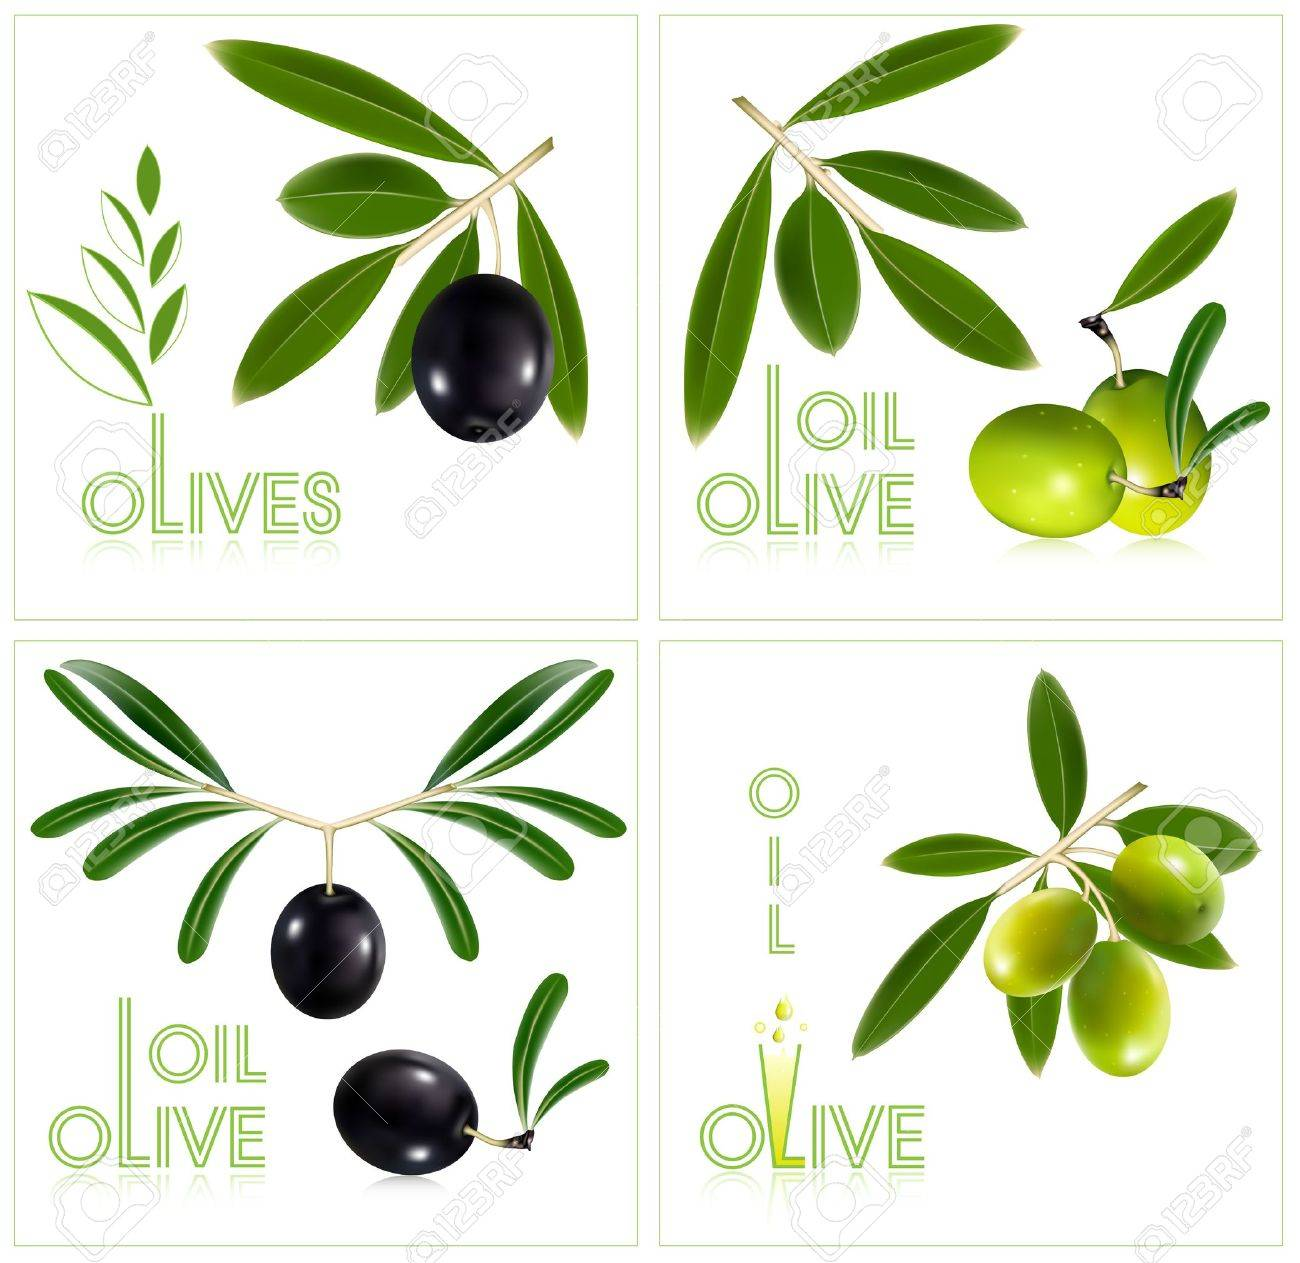 Photorealistic vector illustration. Green olives with leaves. Stock Vector - 10053372